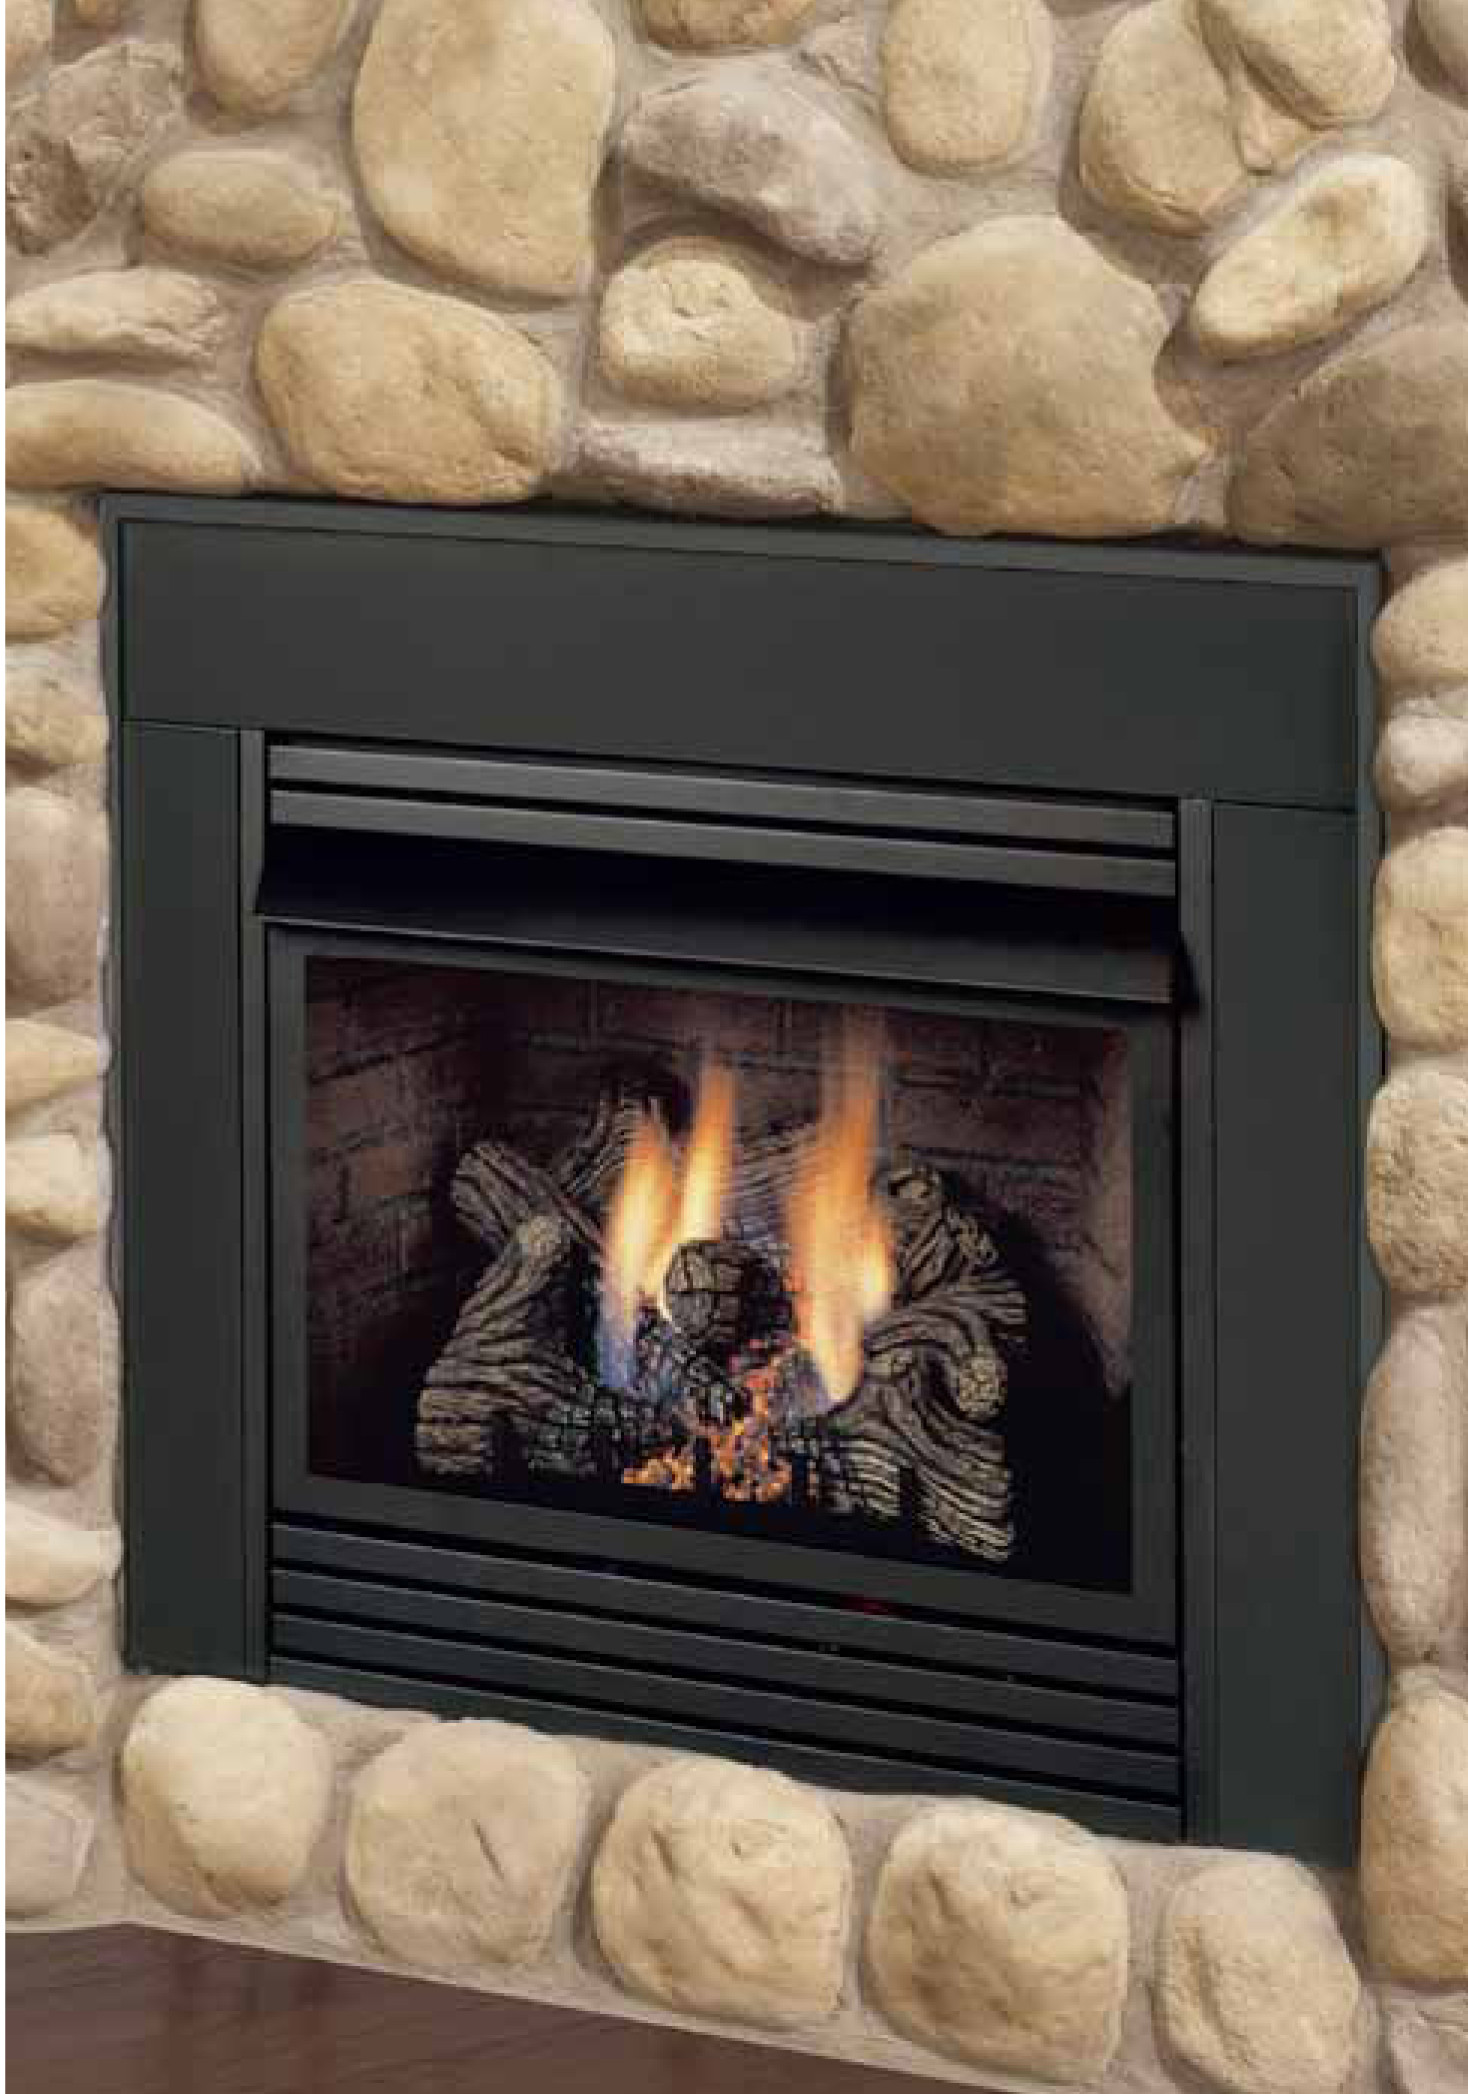 Best ideas about Ventless Gas Fireplace Inserts . Save or Pin Recreational Warehouse Ventless Logs Ventless Now.